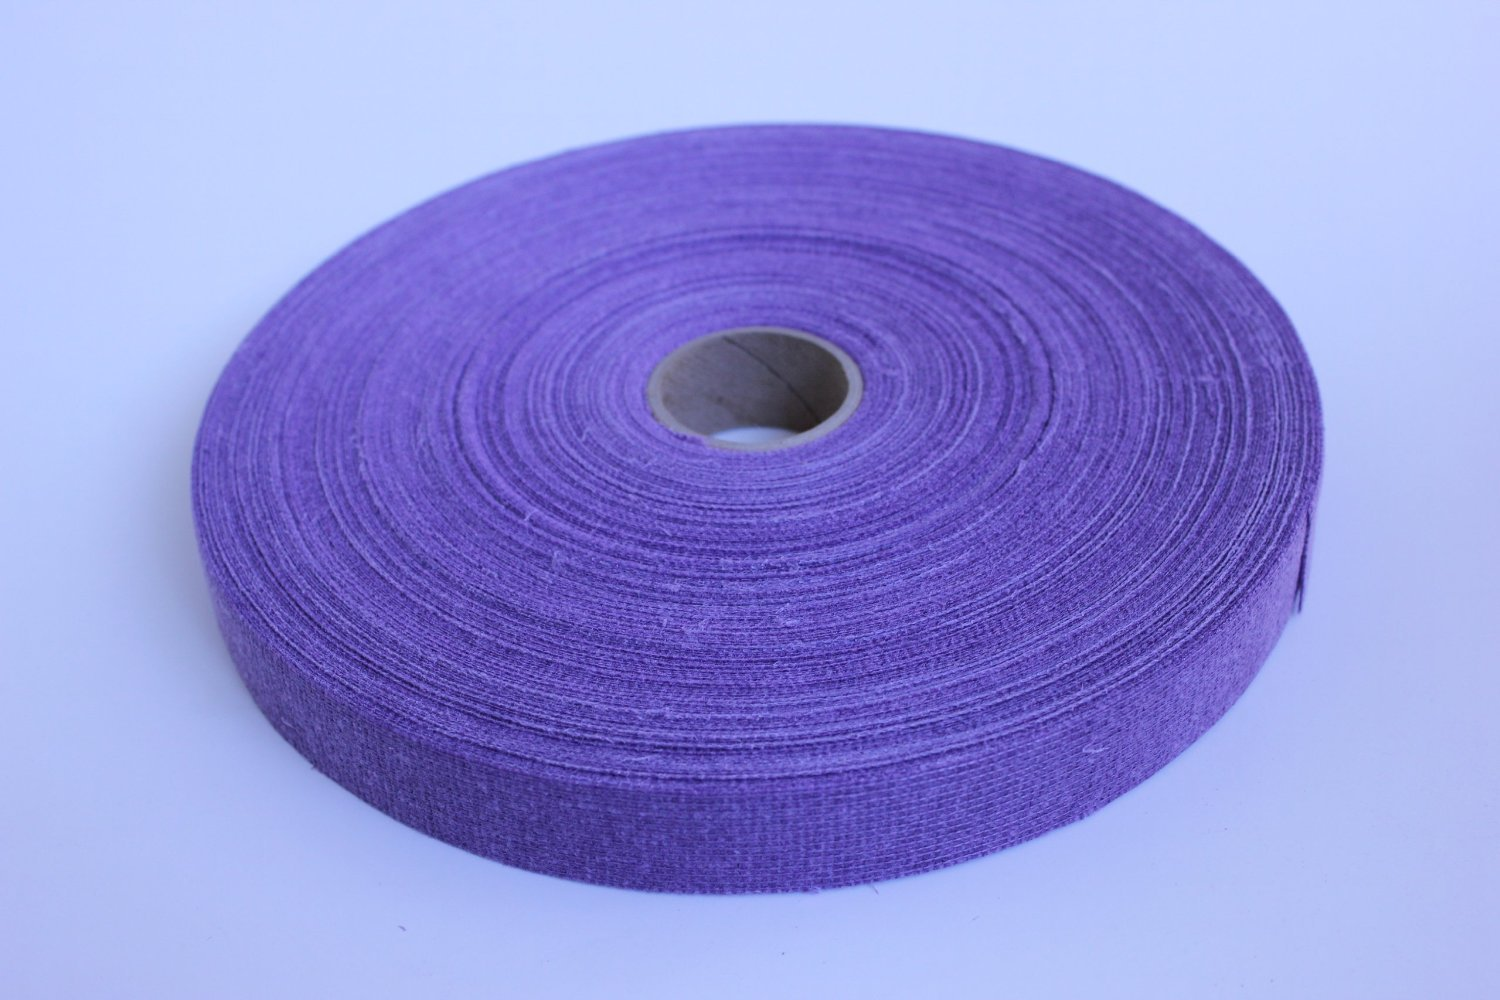 Purple (660) Binding Tape (2 rolls) by Bond Products Inc